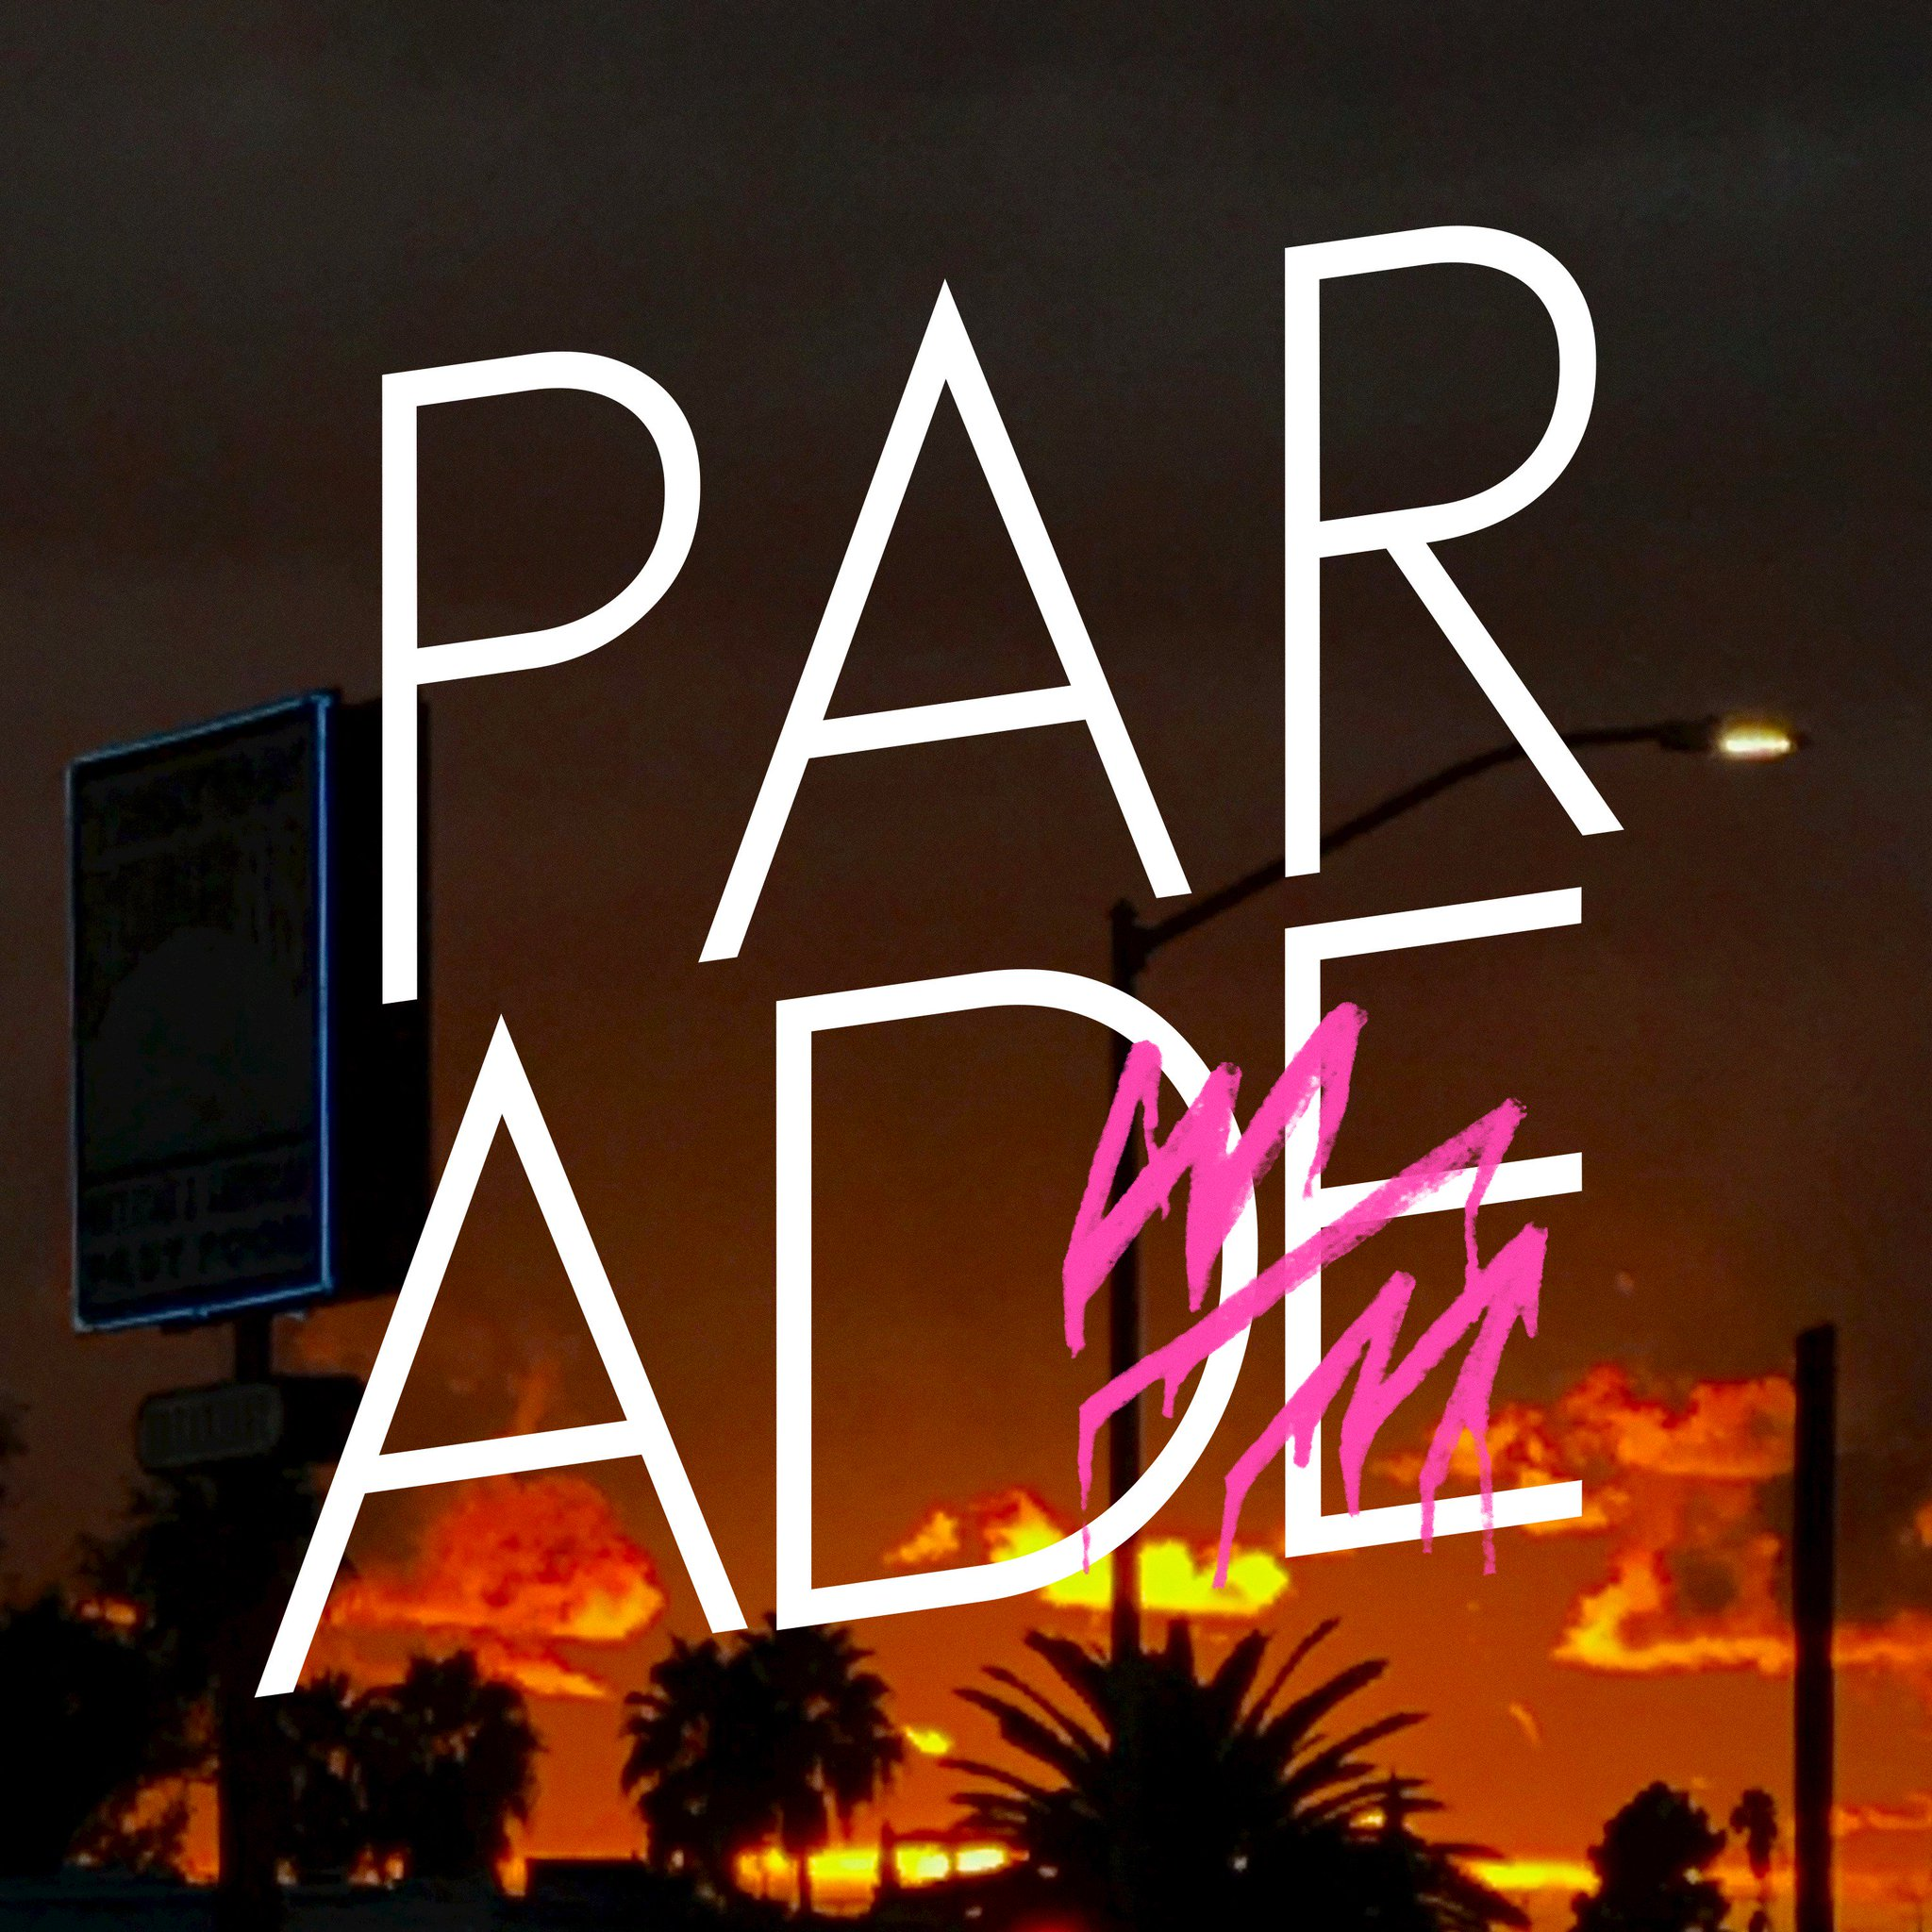 Listen to @SylvanEsso's new single 'PARAD(w/m)E' https://t.co/V3biDM36sJ https://t.co/ZXdpYiP5yQ